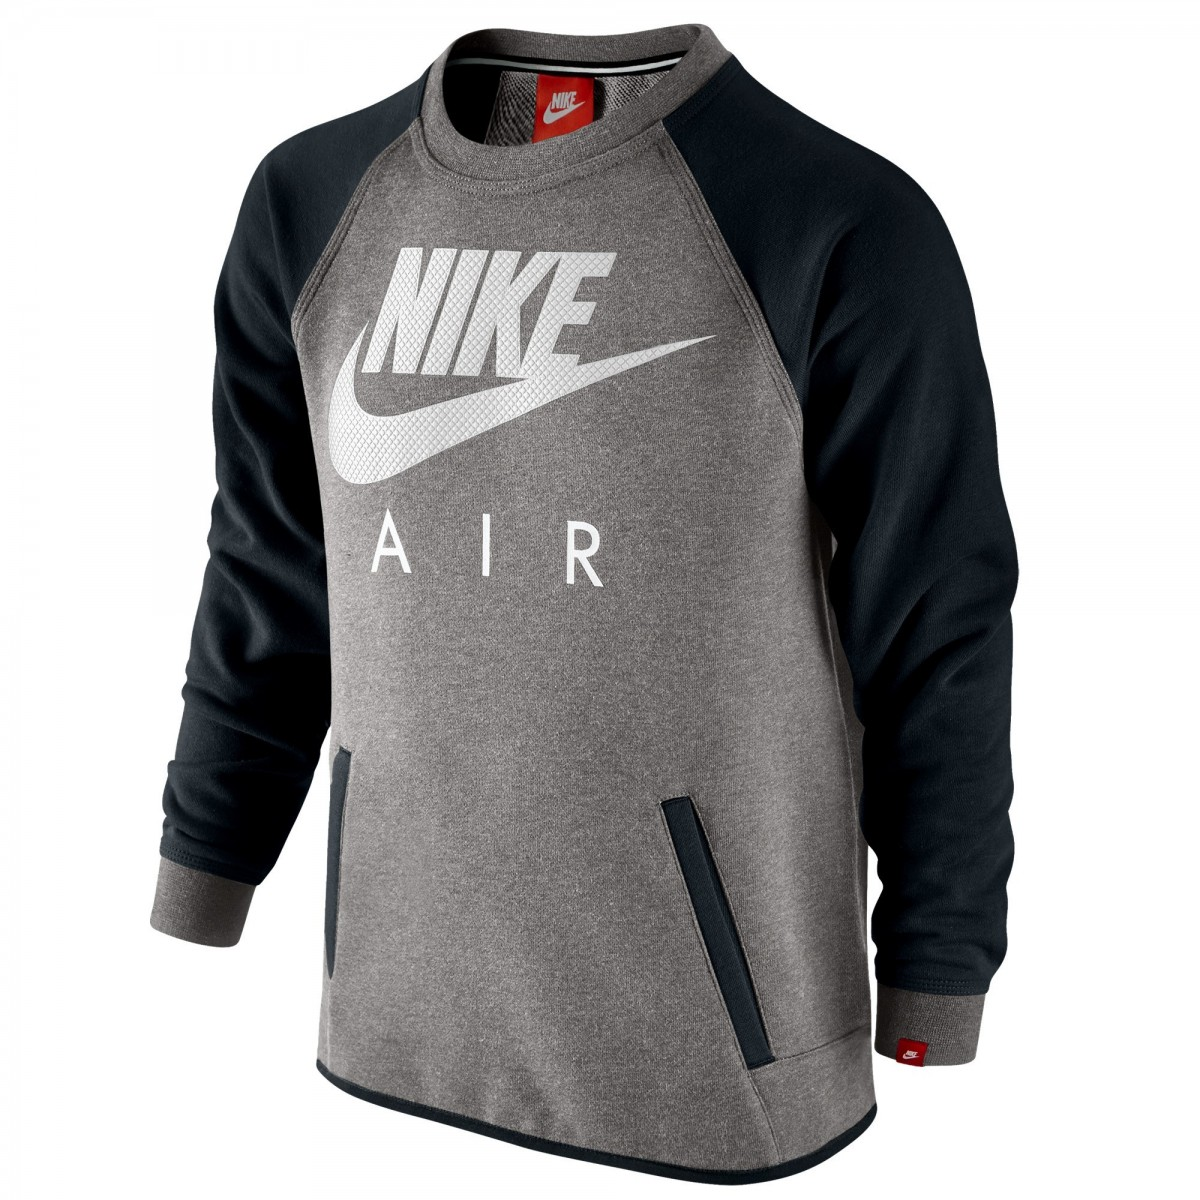 nouveau style dd557 75794 Sweat nike Air French Terry Crew Junior